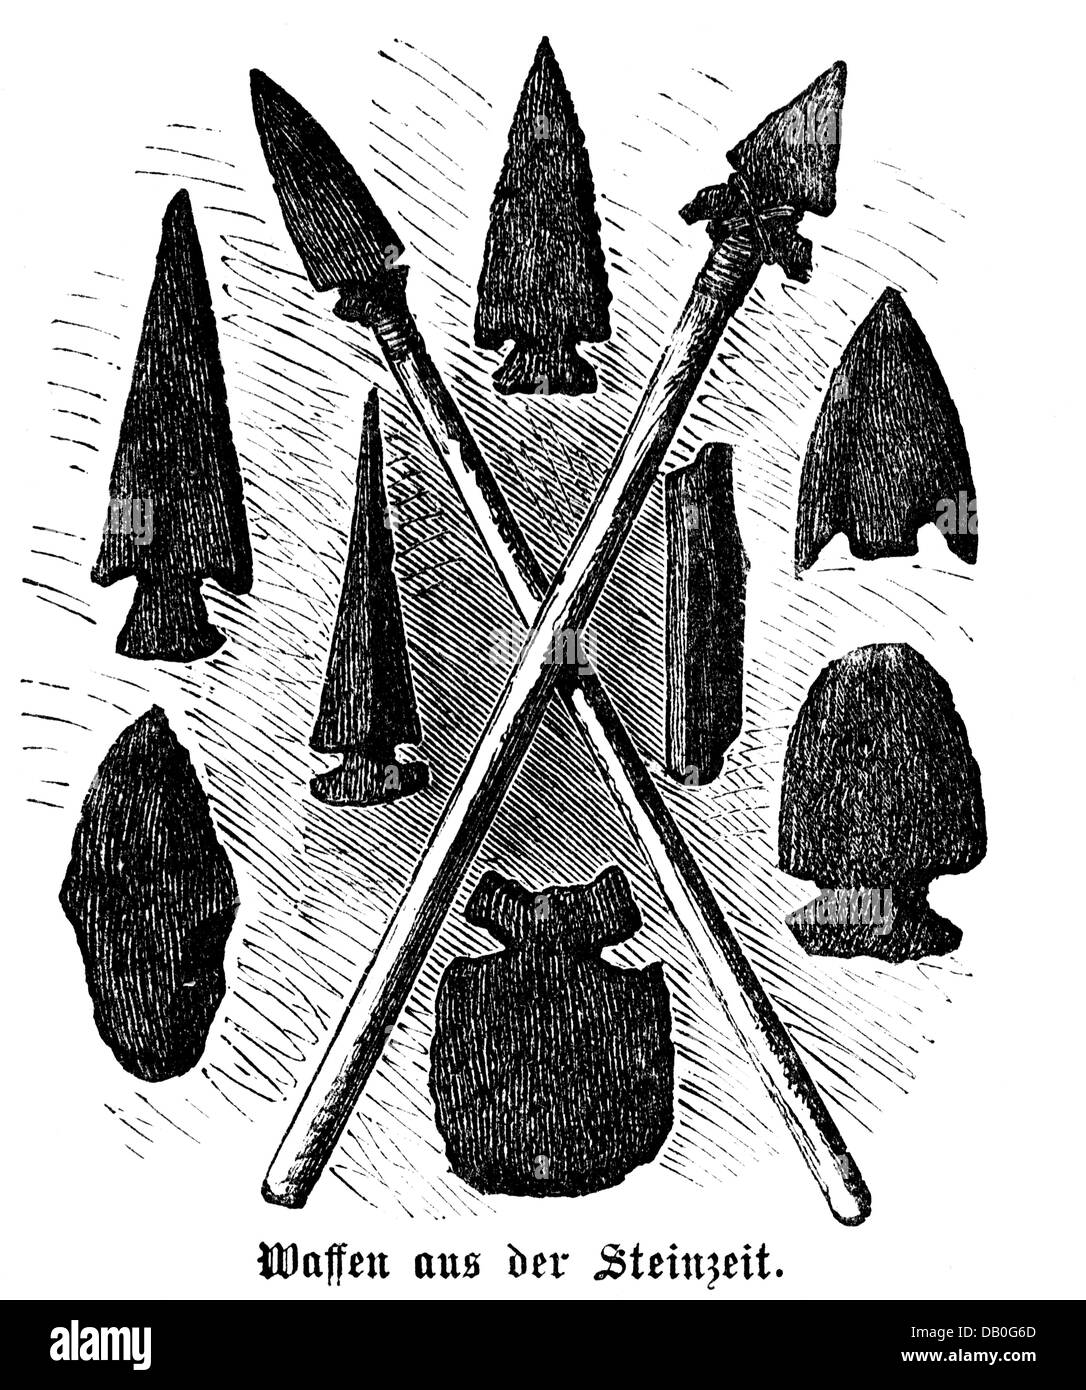 weapons, pole weapon, spears and spearheads from the Stone Age, wood engraving, 1872, spear, spearhead, stone, stones, - Stock Image